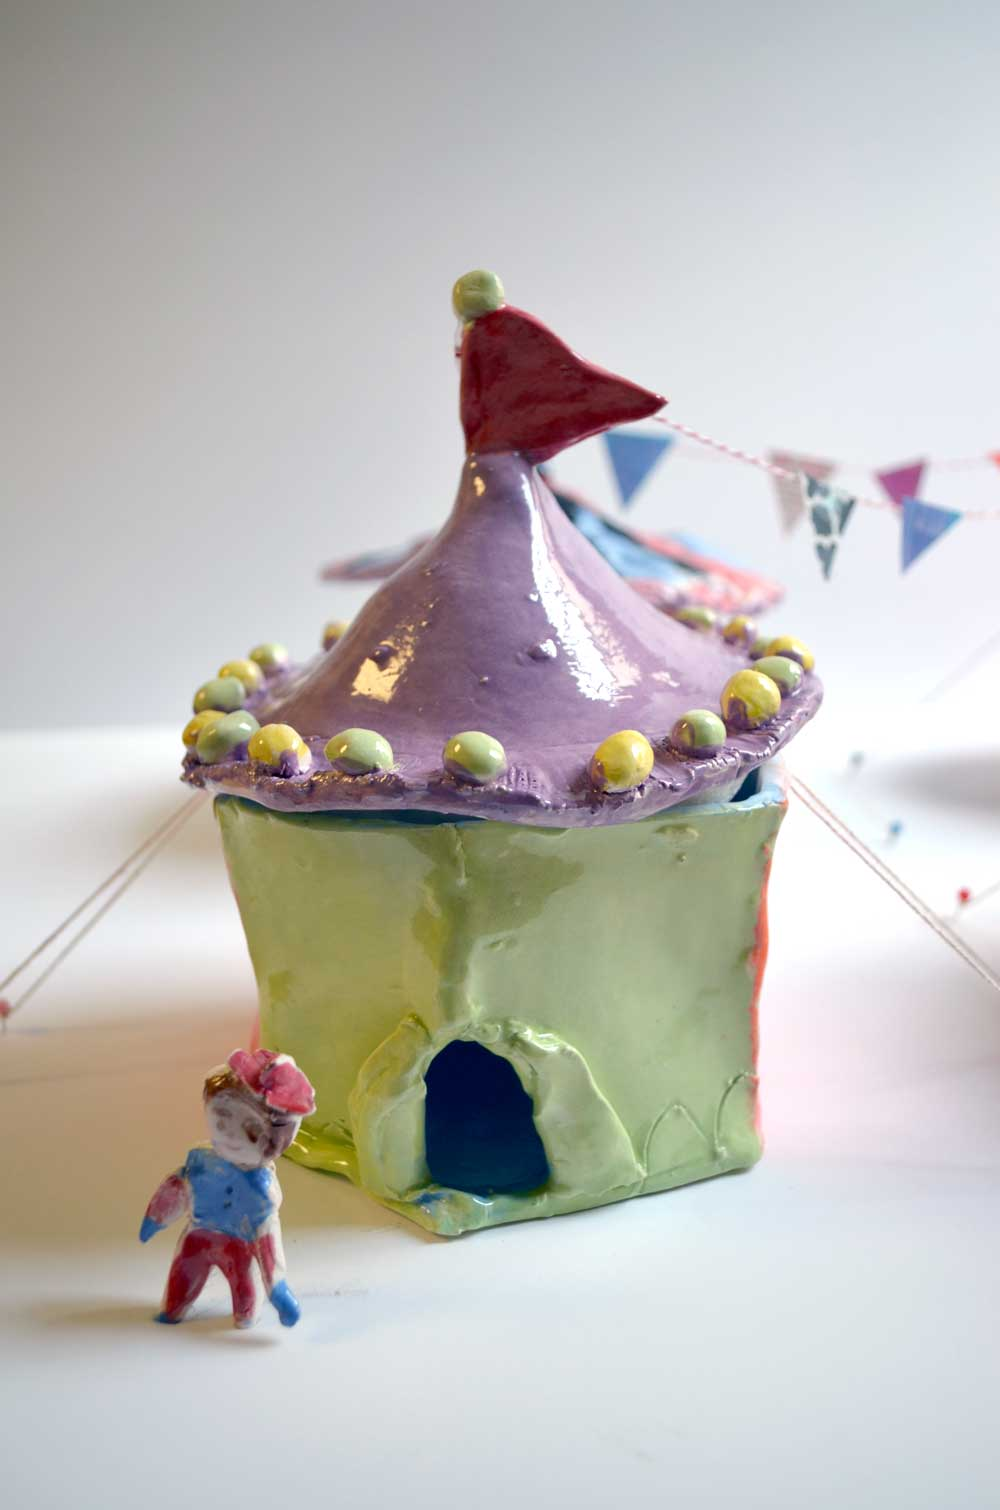 Clay Circus Themed Pottery Camp | www.smallhandsbigart.com